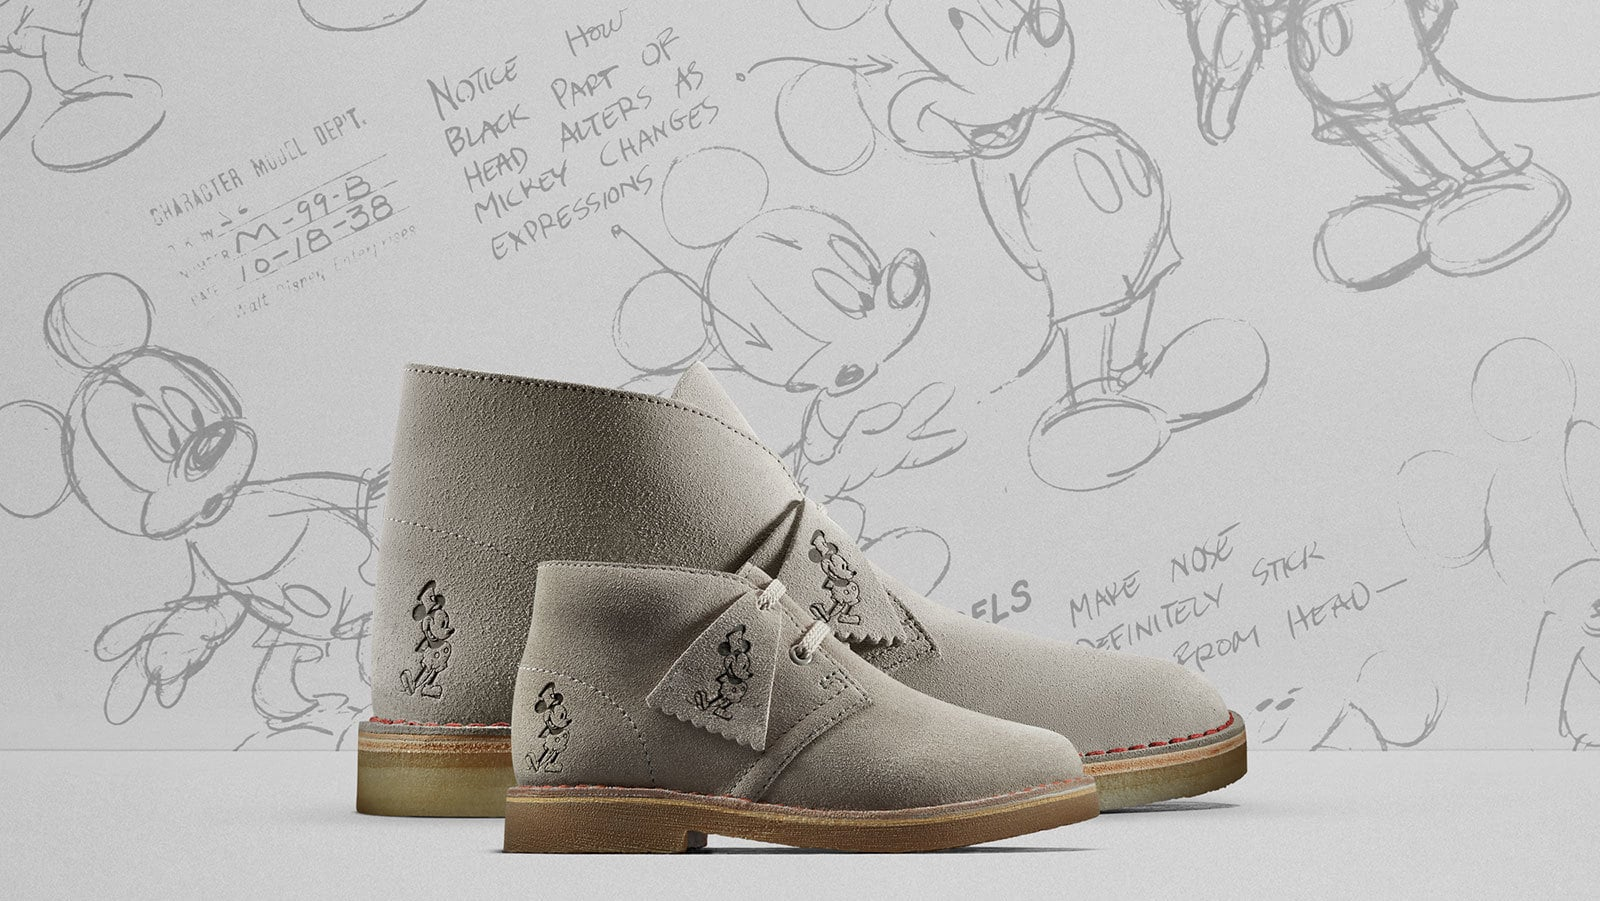 Clarks Originals Celebrates Mickey's 90th With Their Classic Desert Boot